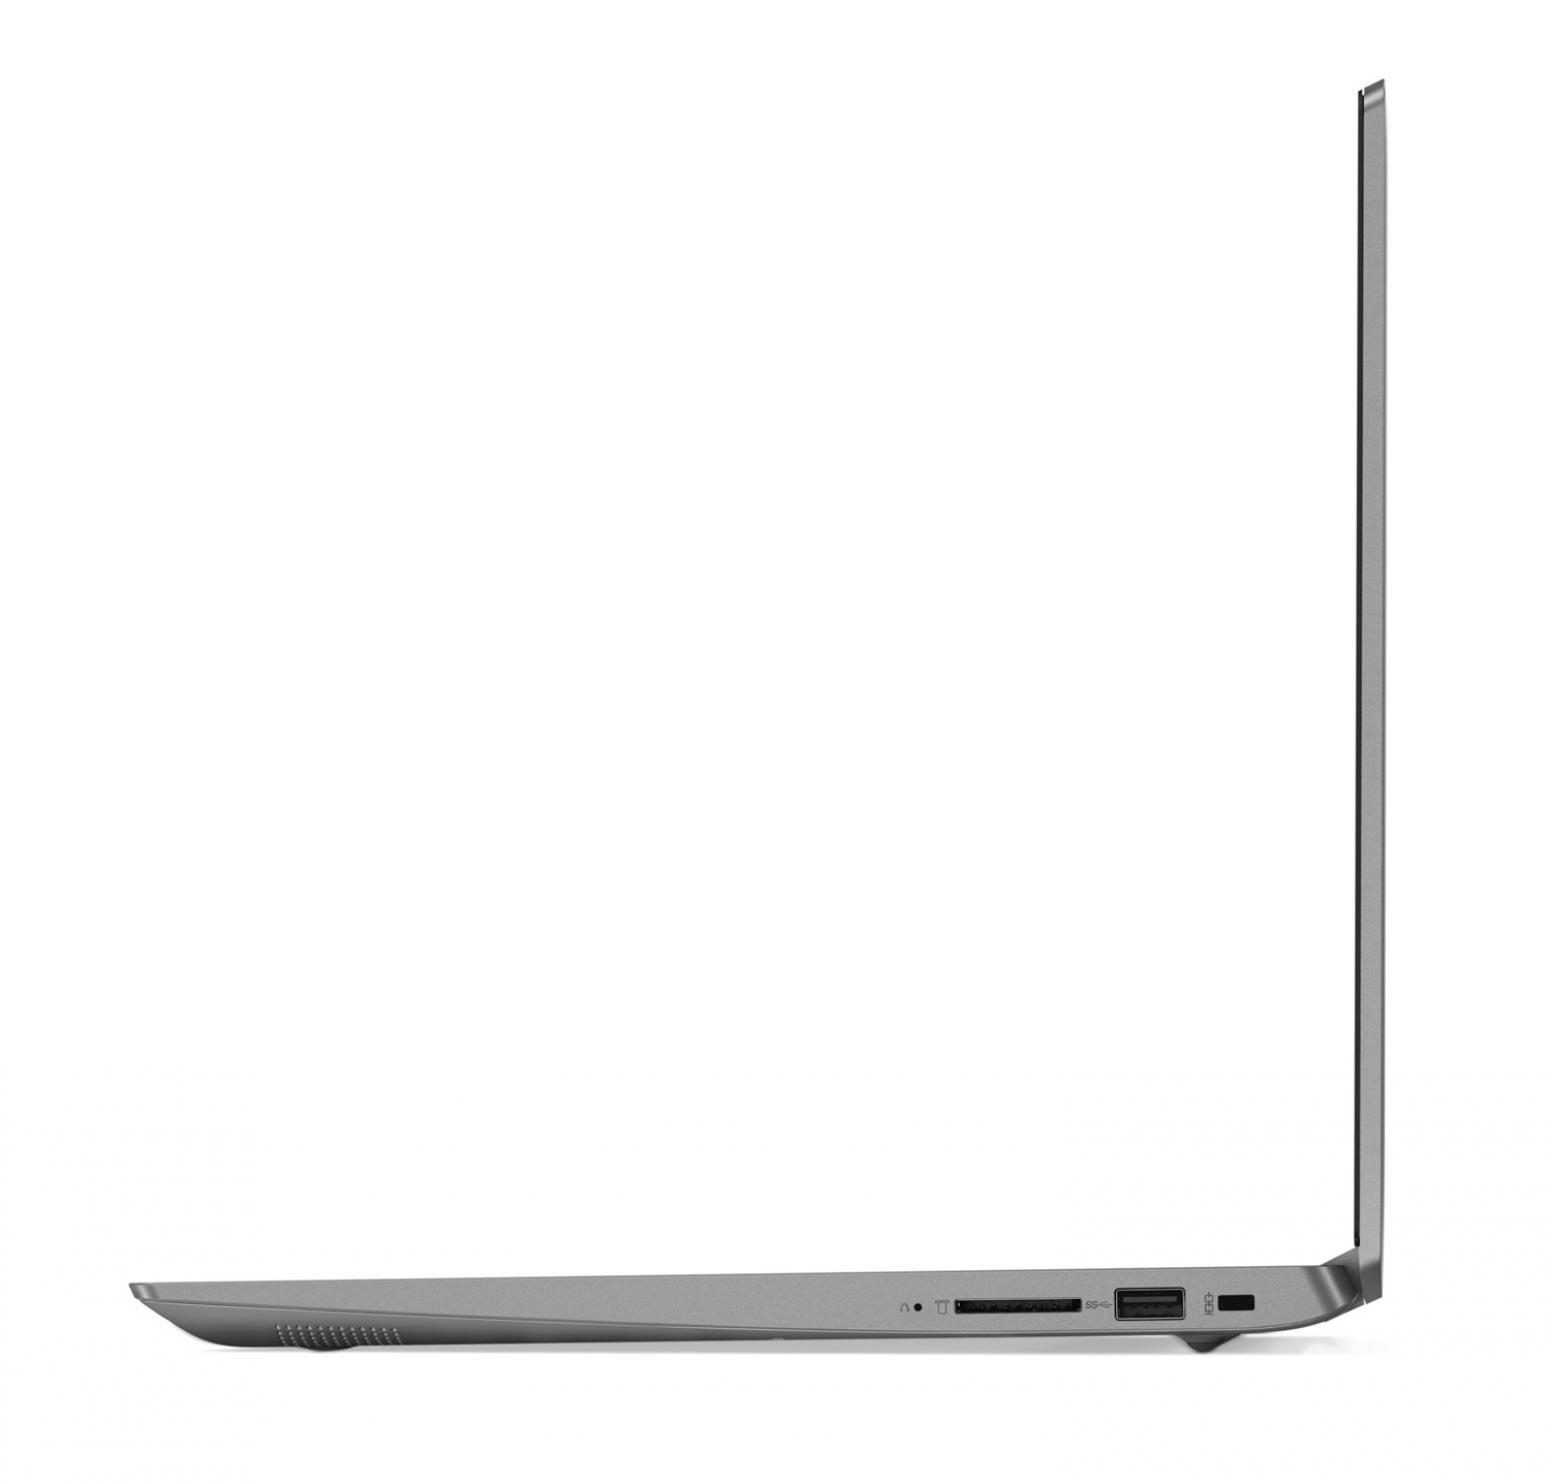 Ordinateur portable Lenovo IdeaPad 330S-15ARR (81FB00BDFR) Argent - Ryzen 3, SSD - photo 7